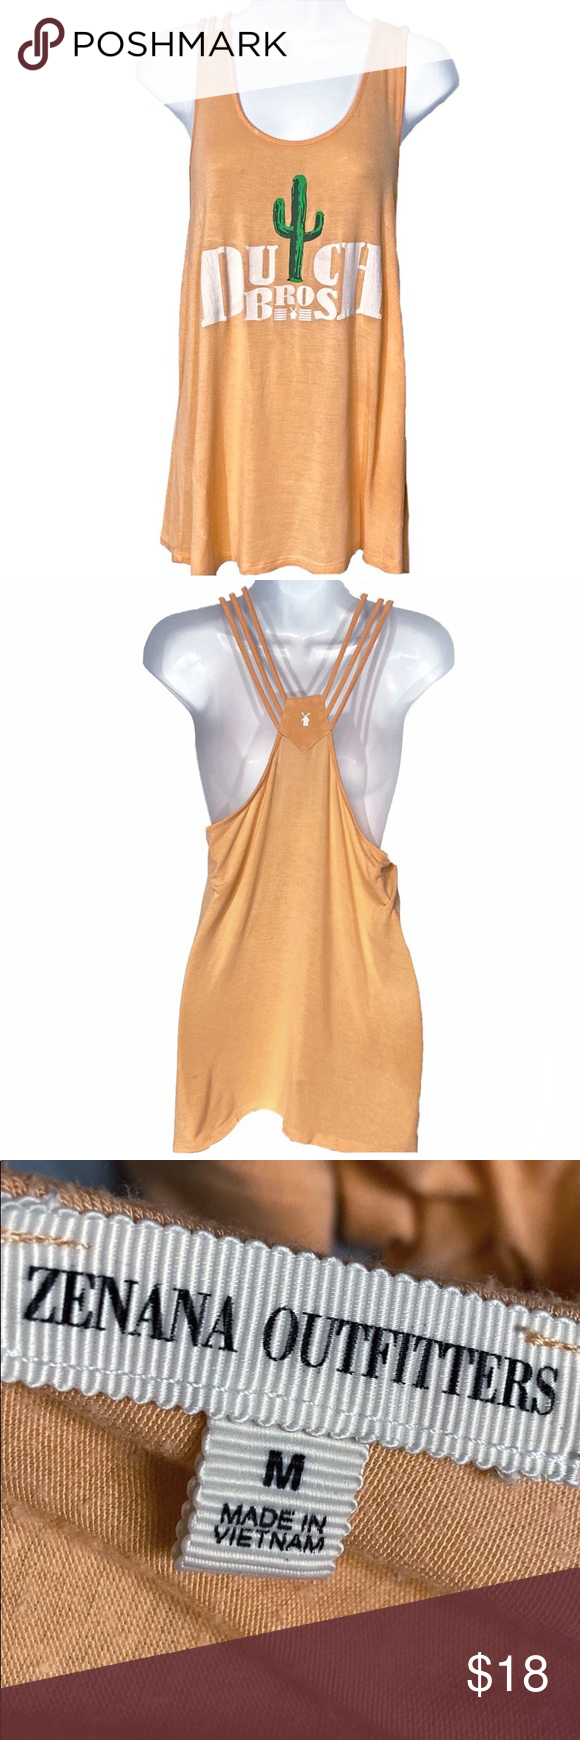 Dutch Bros M Orange Racerback Rayon/Spandex Tank Super Cute Dutch Bros (Can be Worn Tied or Down) Cactus Design Women's Sz Medium Racer Back Tank Top Shirt. 95% Rayon 5% Spandex Dutch Bros Tops Tank Tops #dutchbros Dutch Bros M Orange Racerback Rayon/Spandex Tank Super Cute Dutch Bros (Can be Worn Tied or Down) Cactus Design Women's Sz Medium Racer Back Tank Top Shirt. 95% Rayon 5% Spandex Dutch Bros Tops Tank Tops #dutchbros